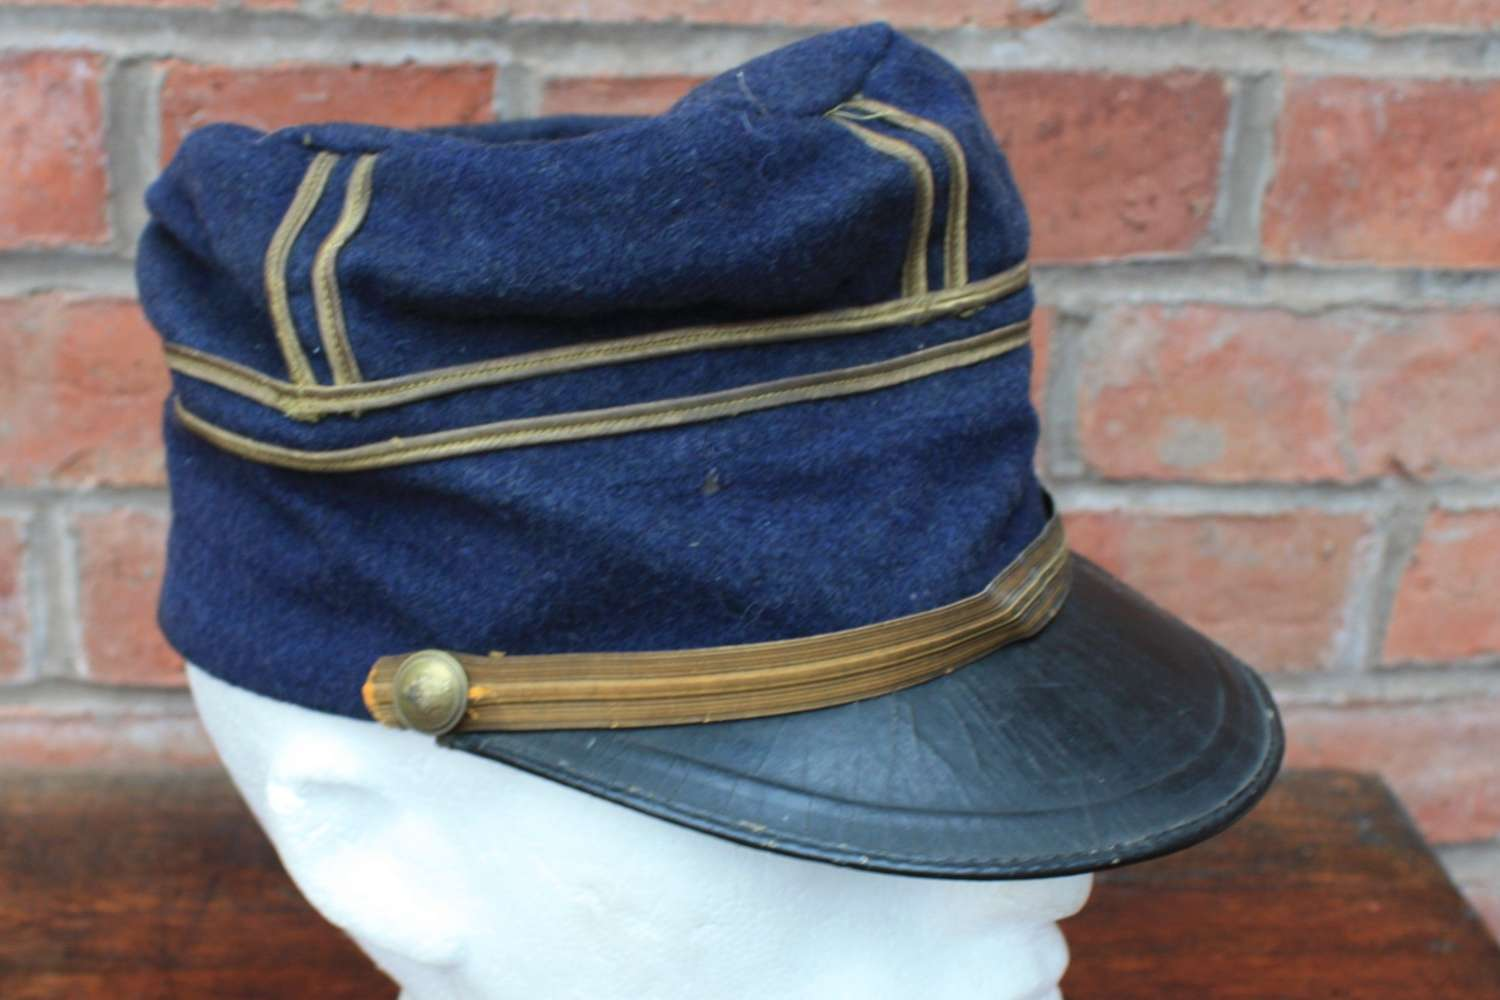 WW1 French Officers Blue Peaked Kepi / Cap with gold trim.